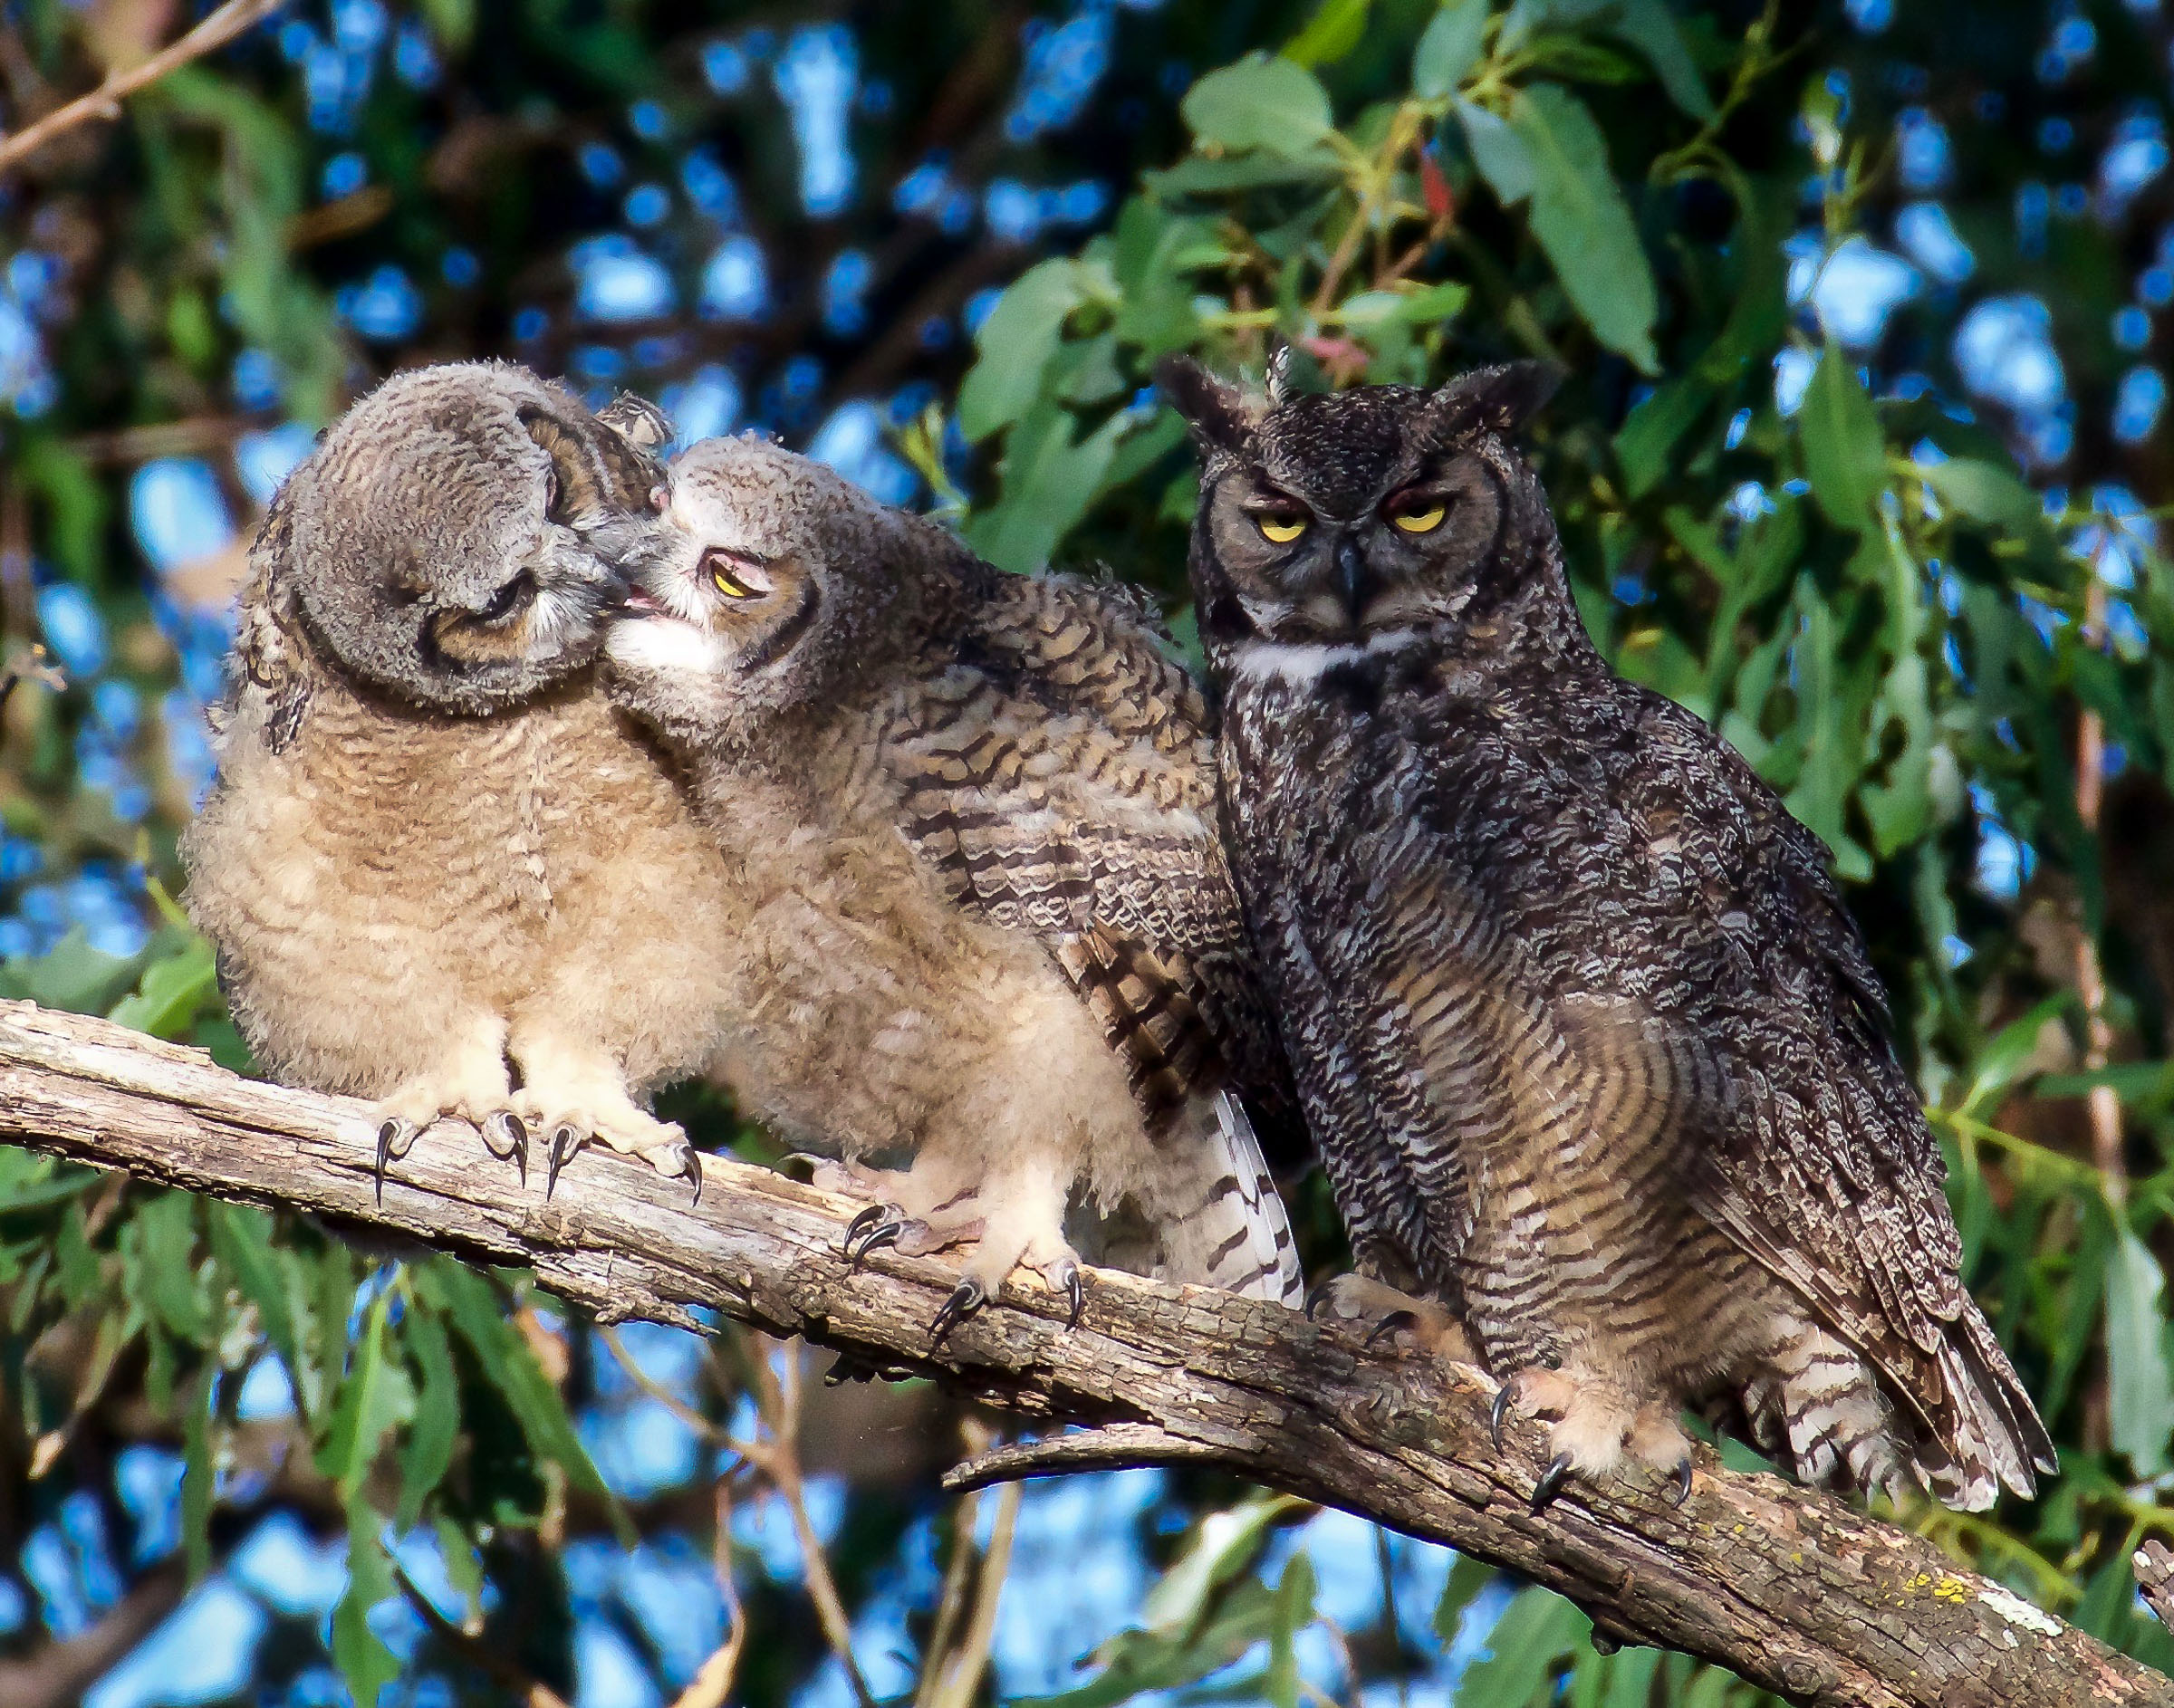 mother-great-horned-owl-grooming-owlets-12.jpg